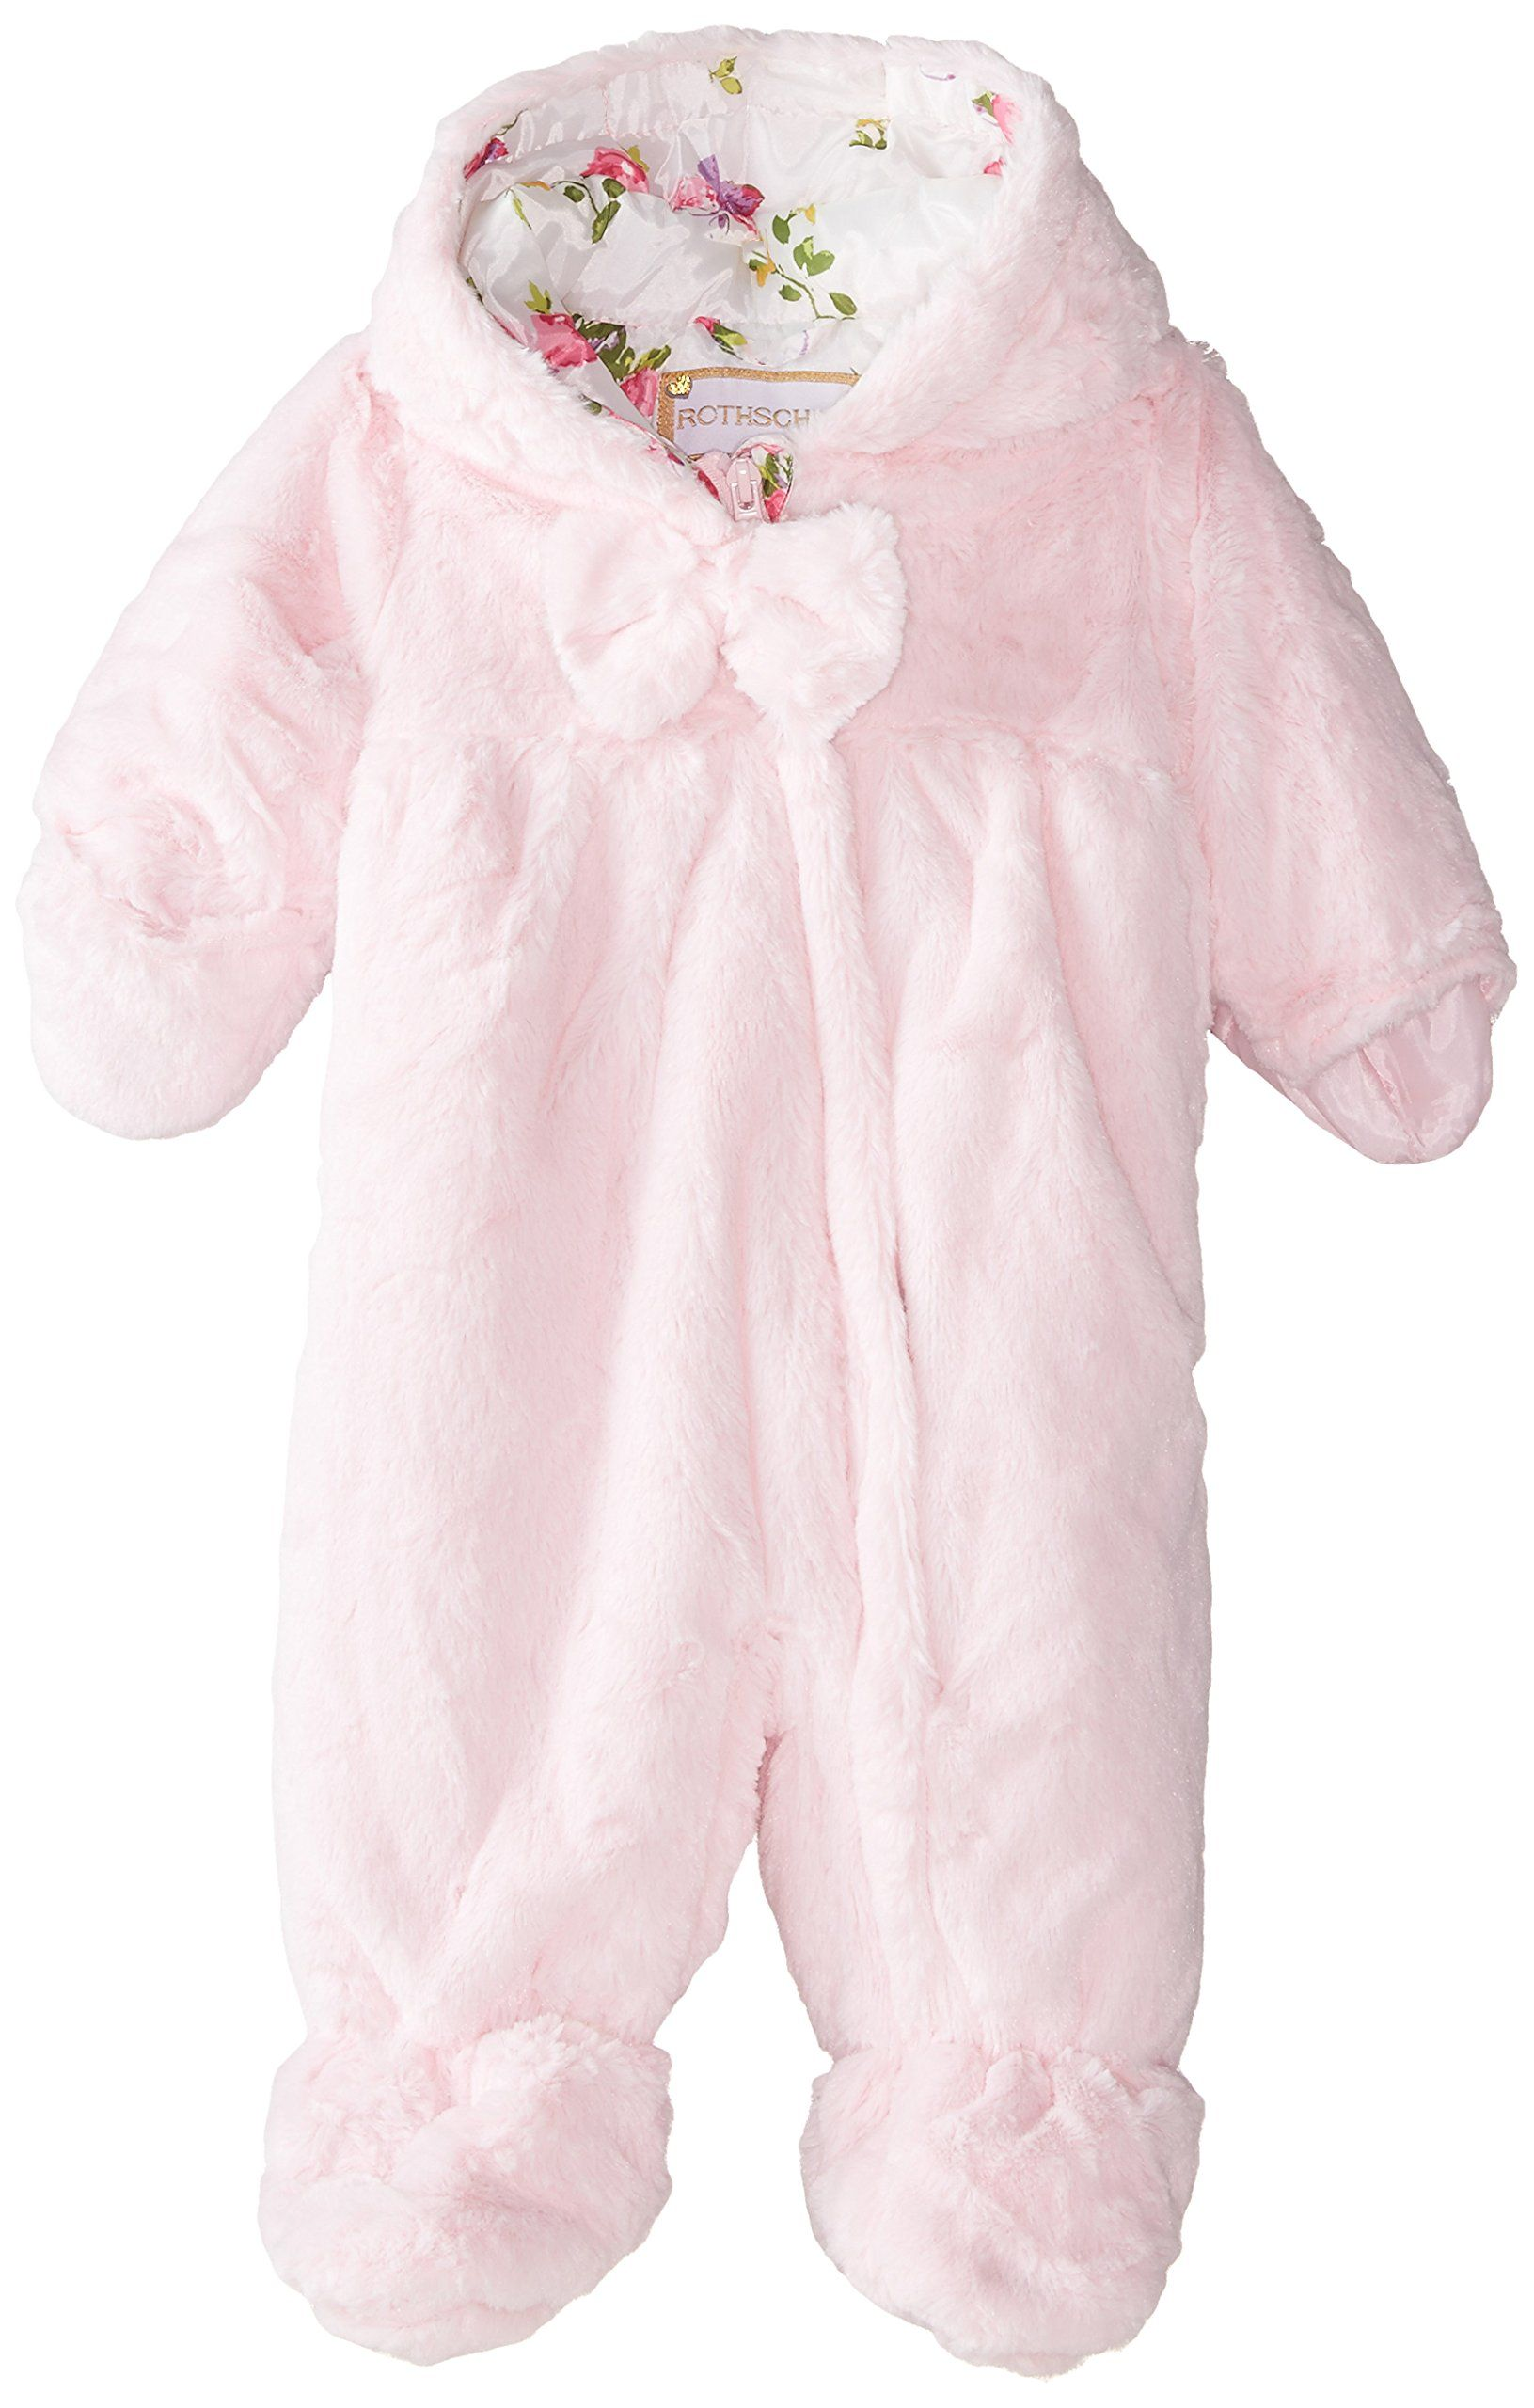 Rothschild Baby Clothes Newest and Cutest Baby Clothing Collection